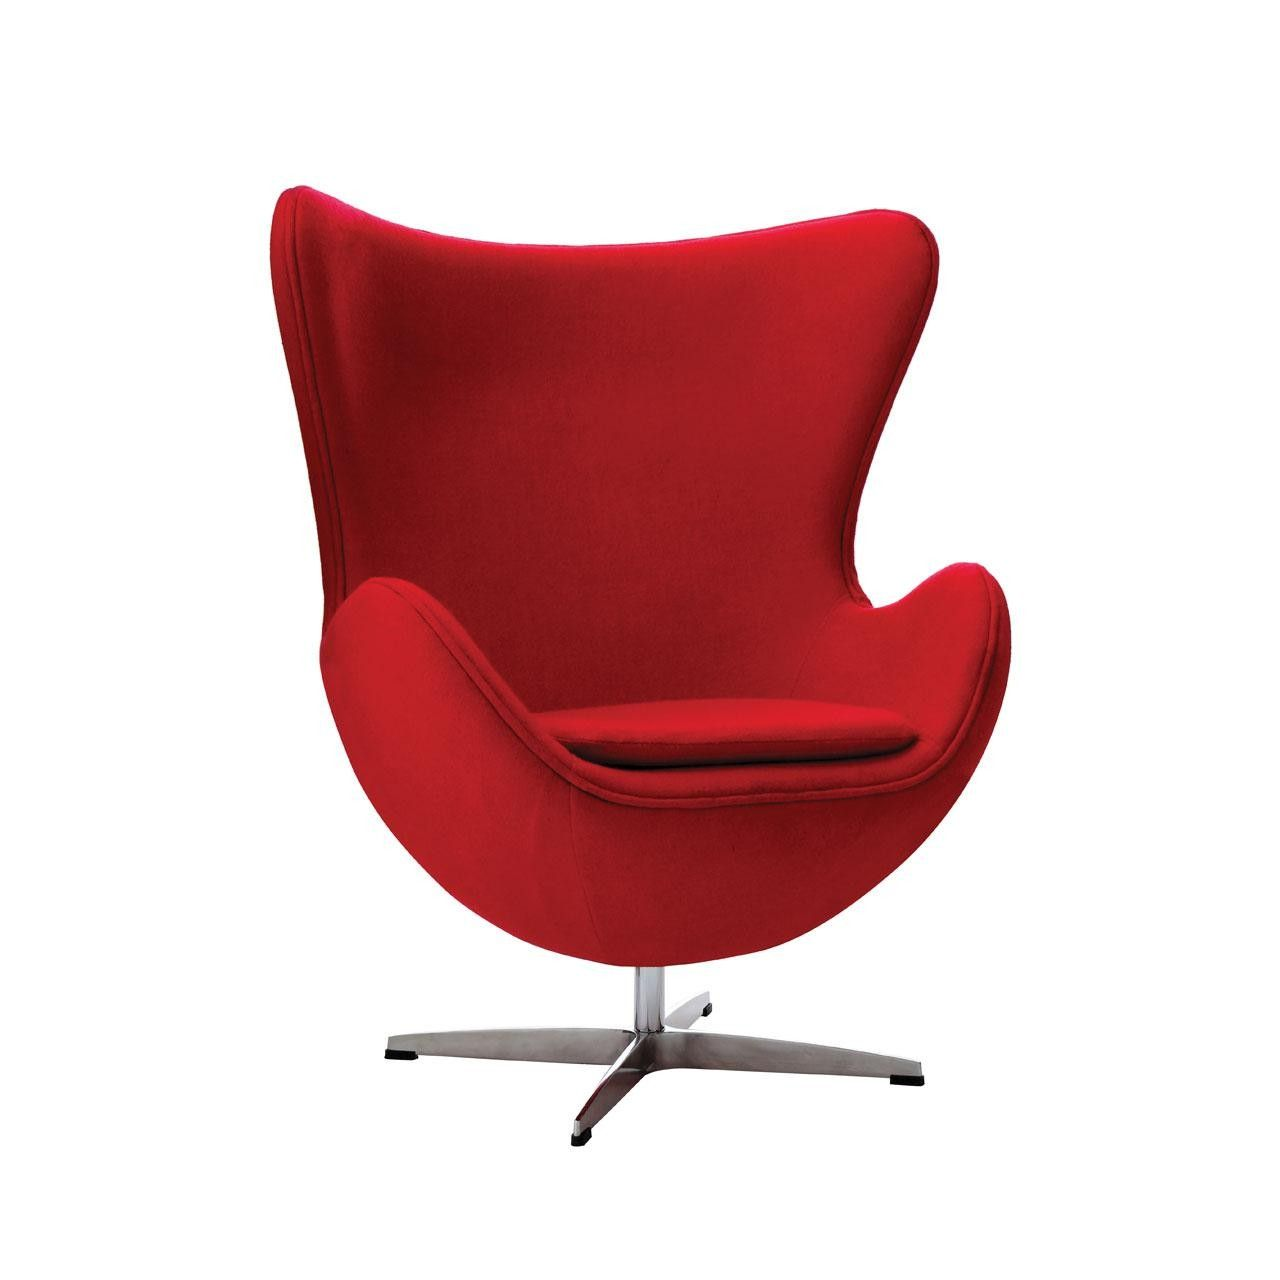 This elegant red wool effect funky chair comes with padding to